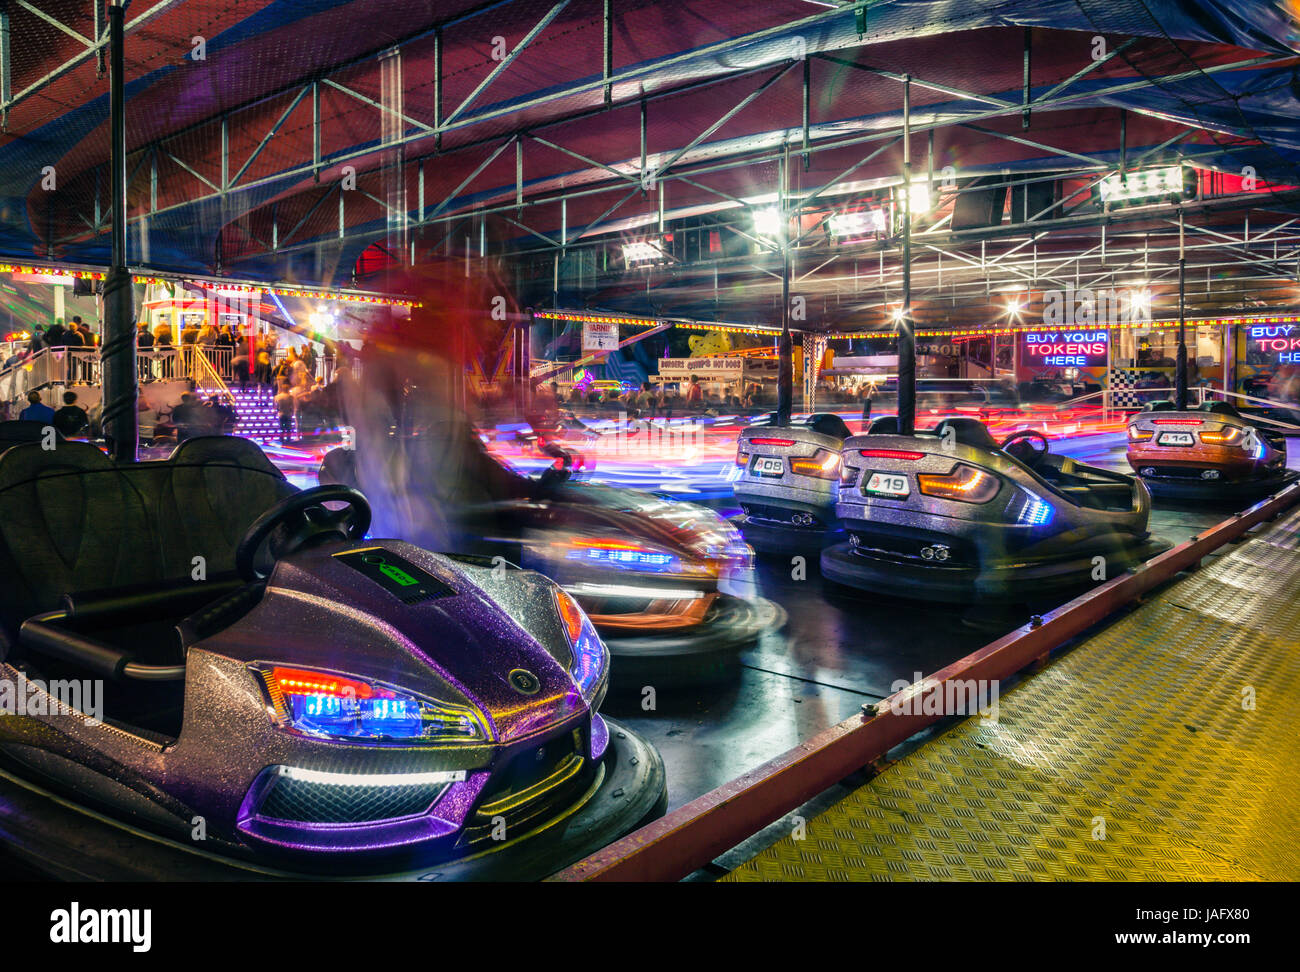 'The Dodgem' aka Bumper Cars ride at Witney Feast. - Stock Image